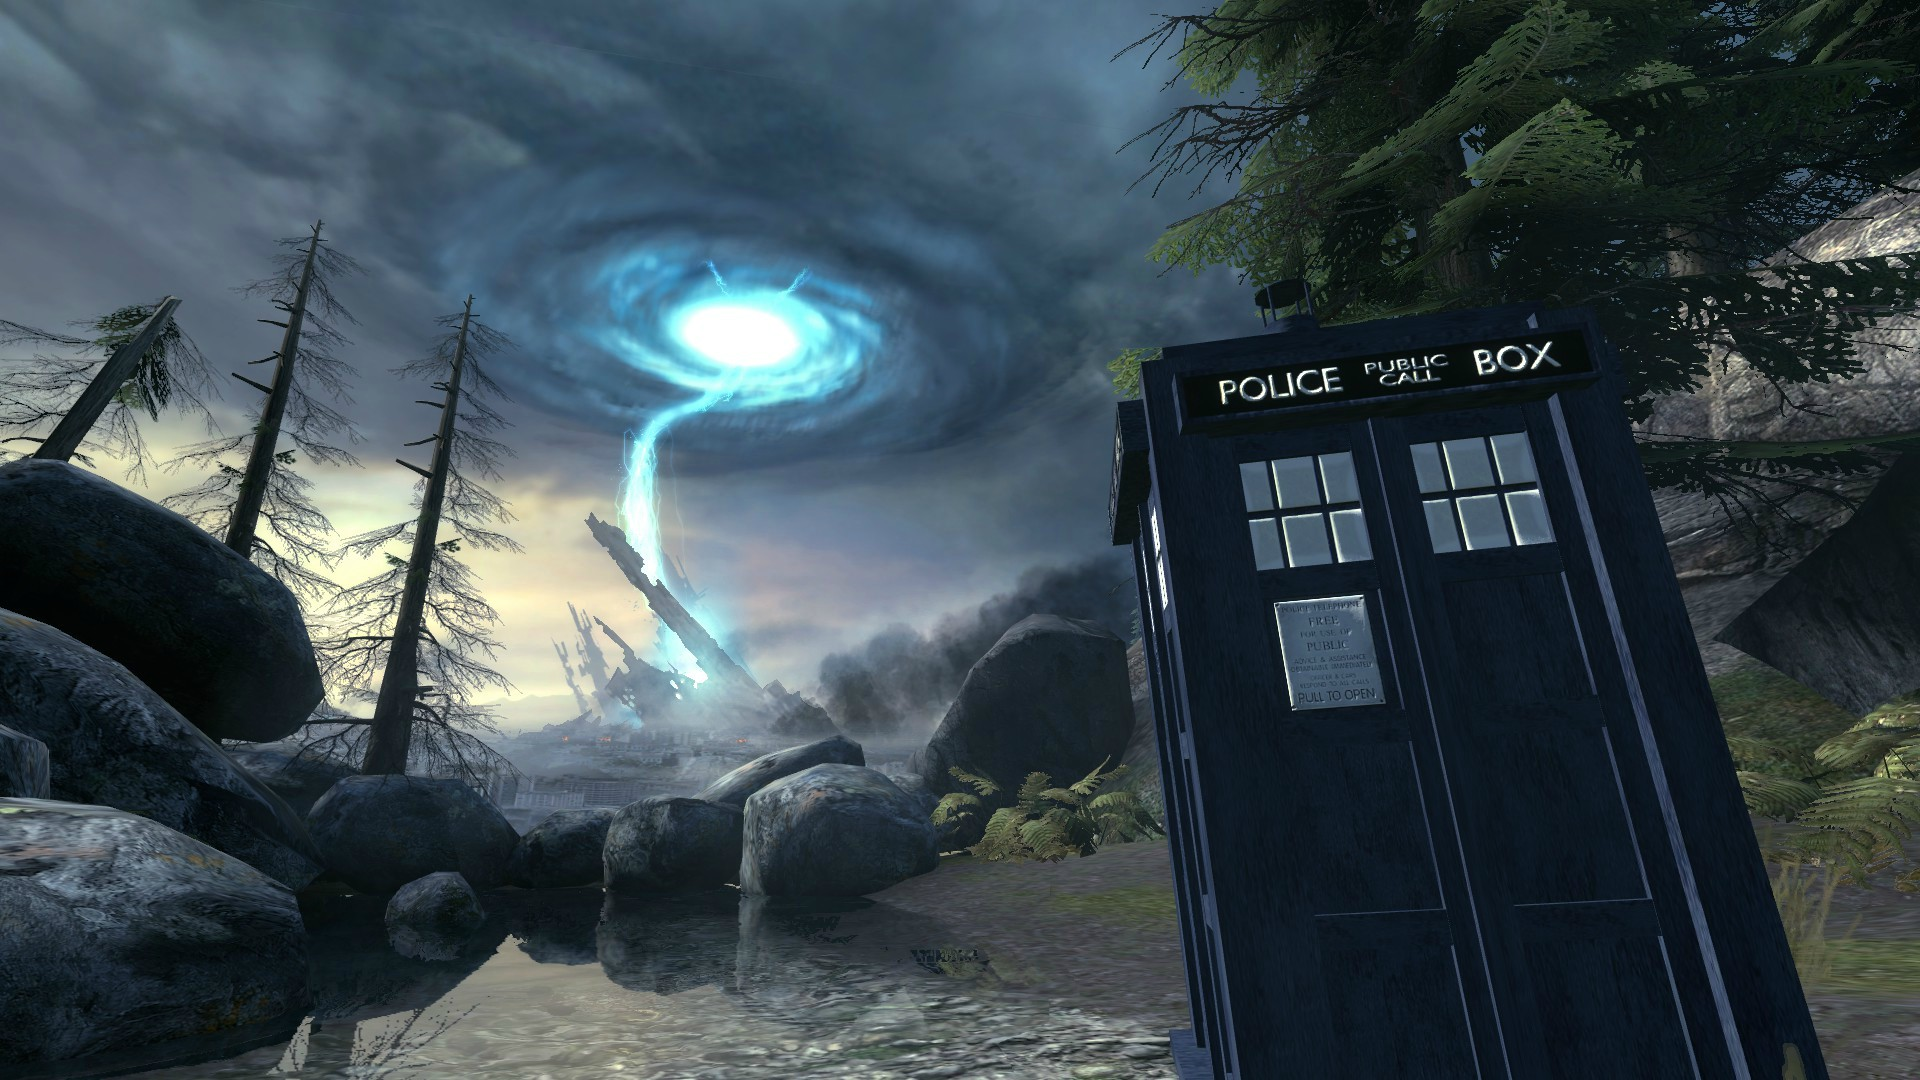 Doctorwho Half Life 2 Mod Doctor 1824817 Hd Wallpaper